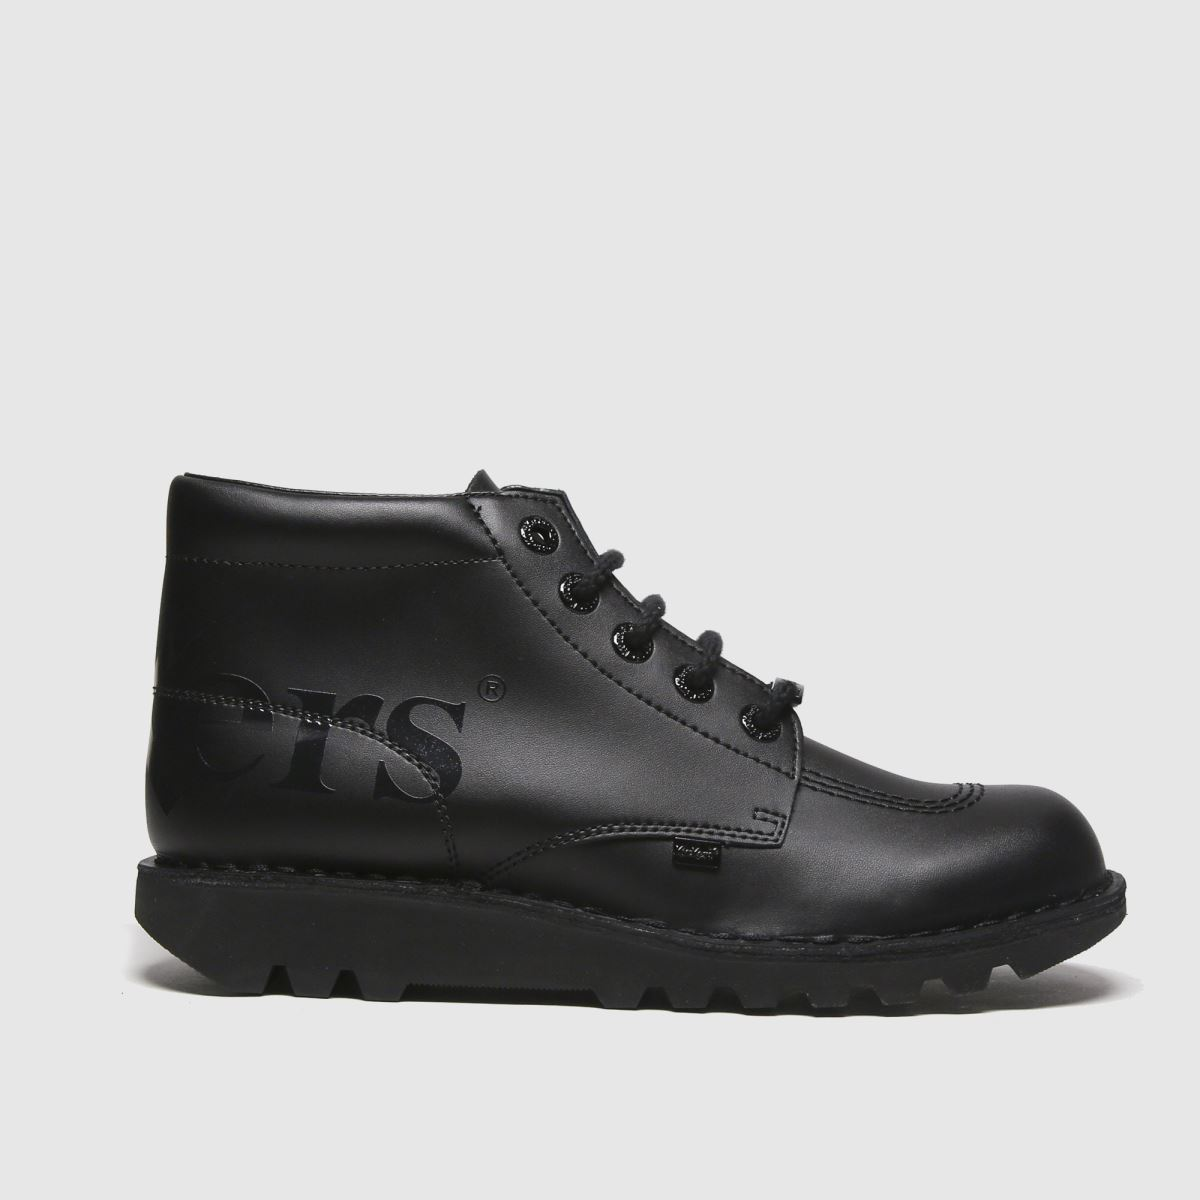 Kickers Black Kick Hi Luxx Boots